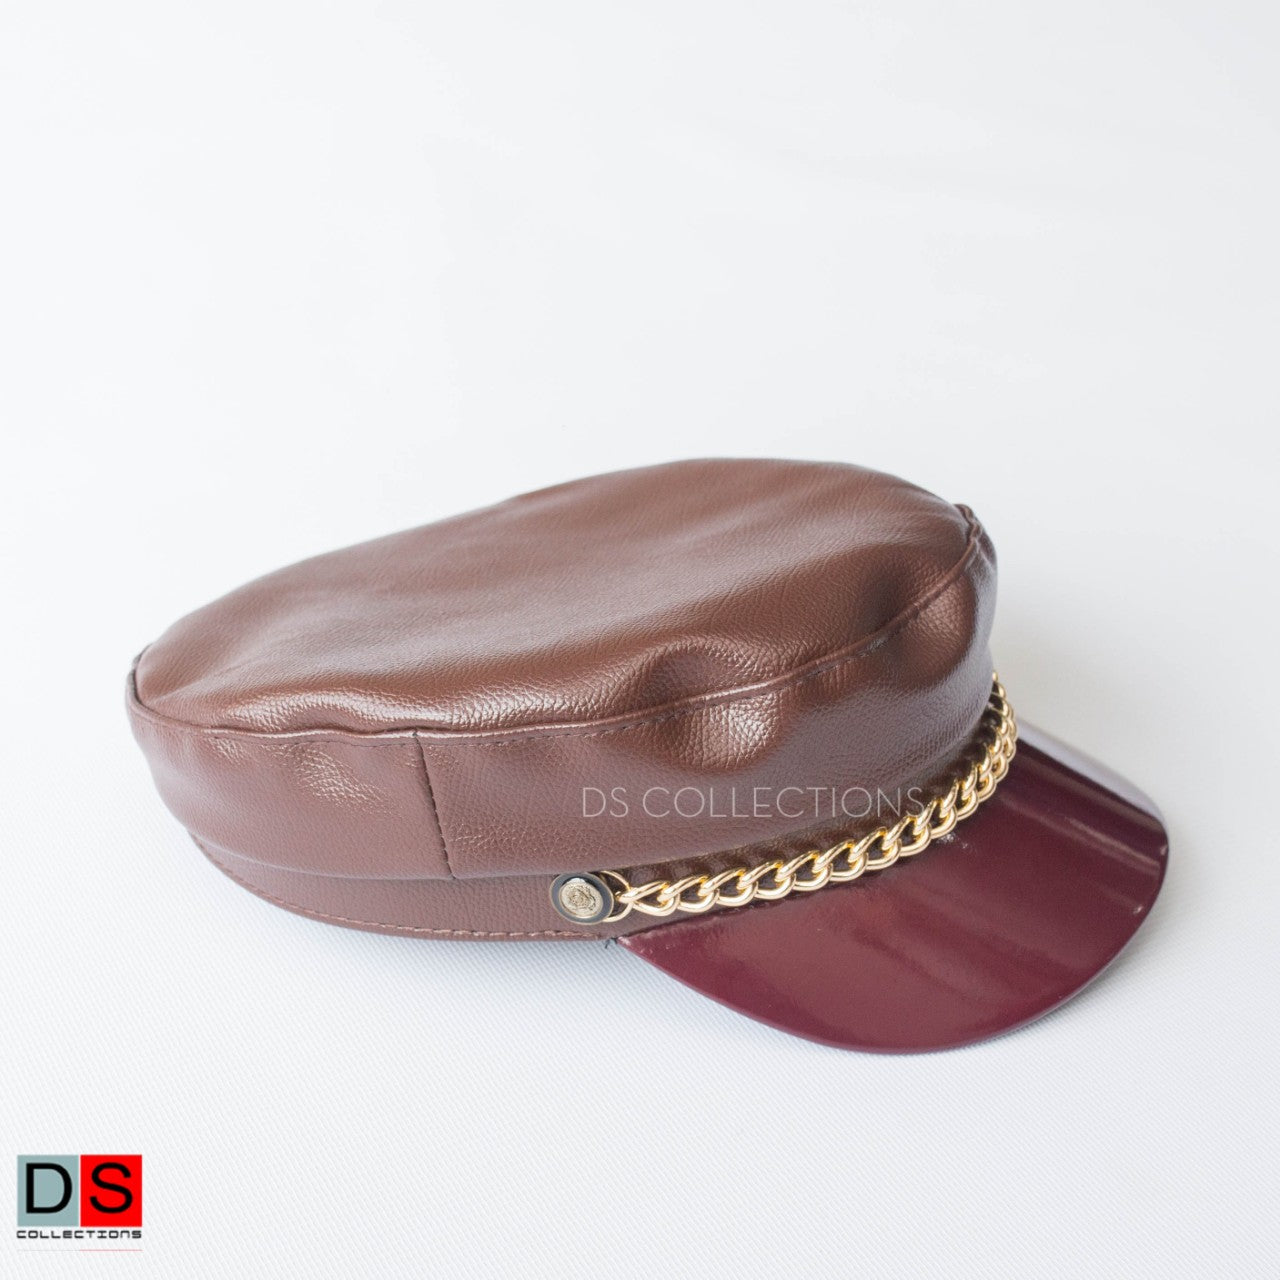 Women's Hat - Baker Boy Hat | DS Collections Nepal